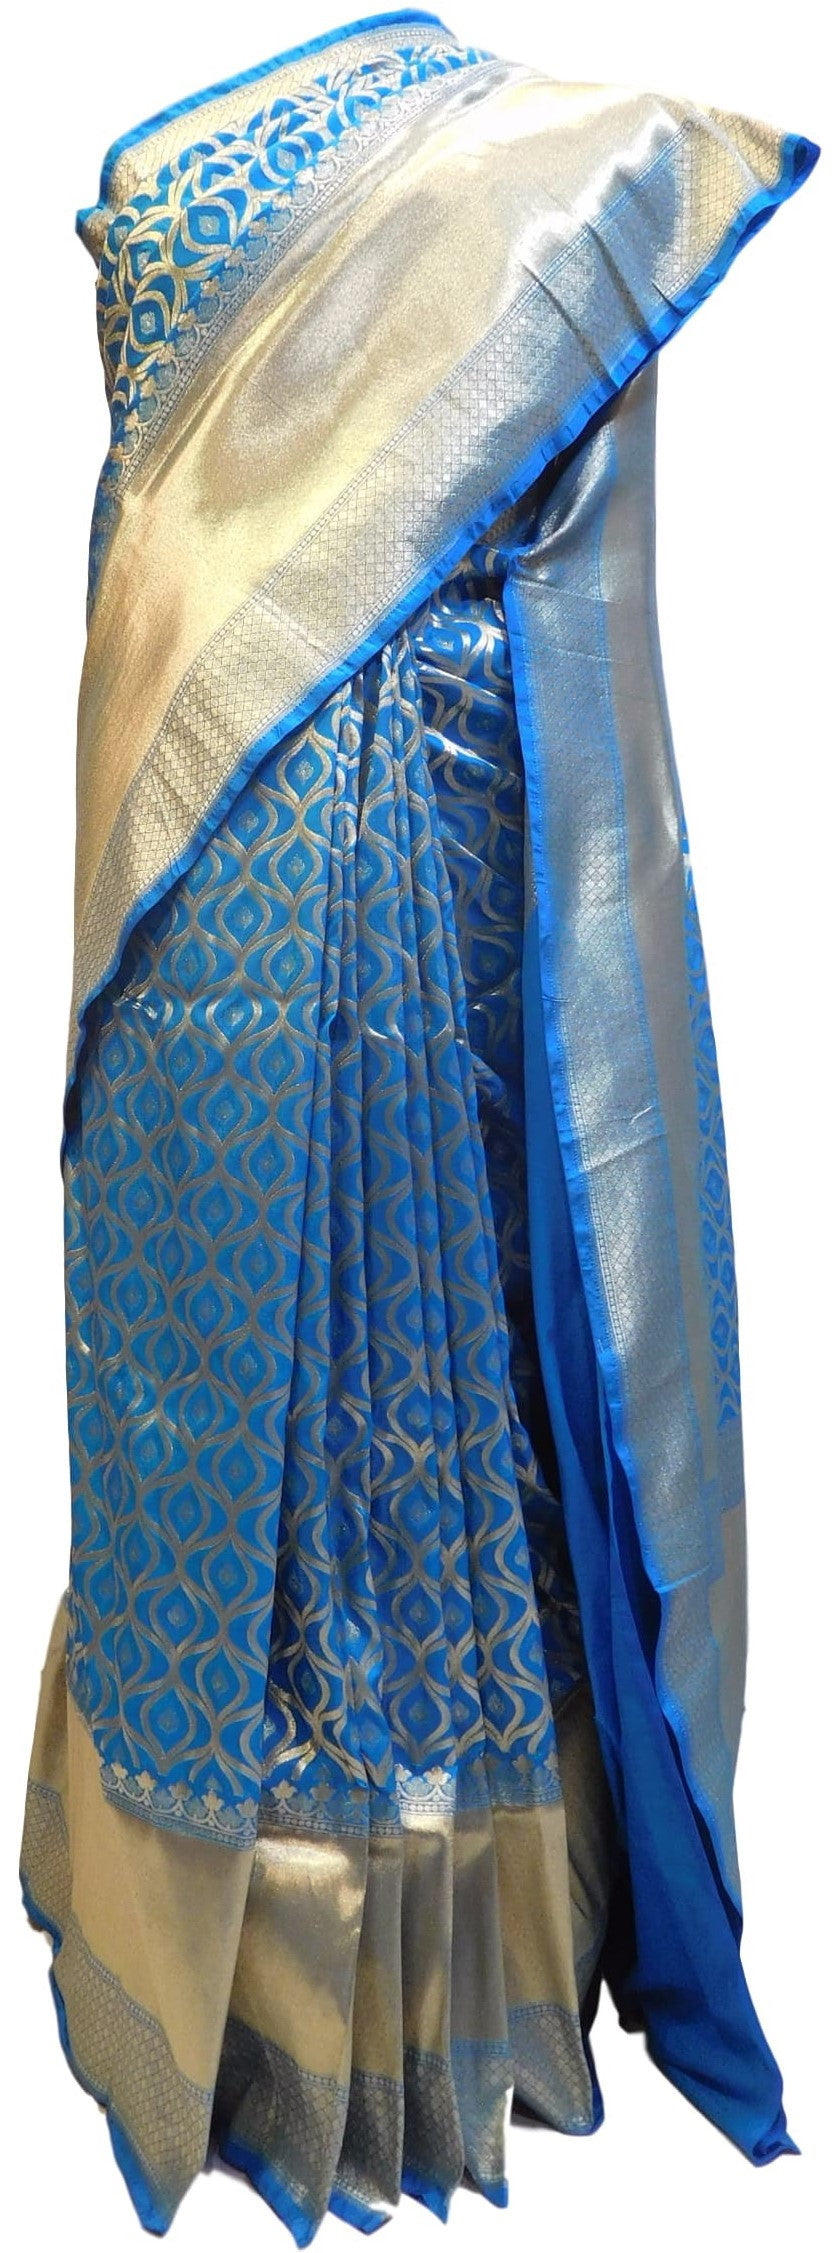 Blue Traditional Designer Bridal Hand Weaven Pure Benarasi Zari Work Saree Sari With Blouse